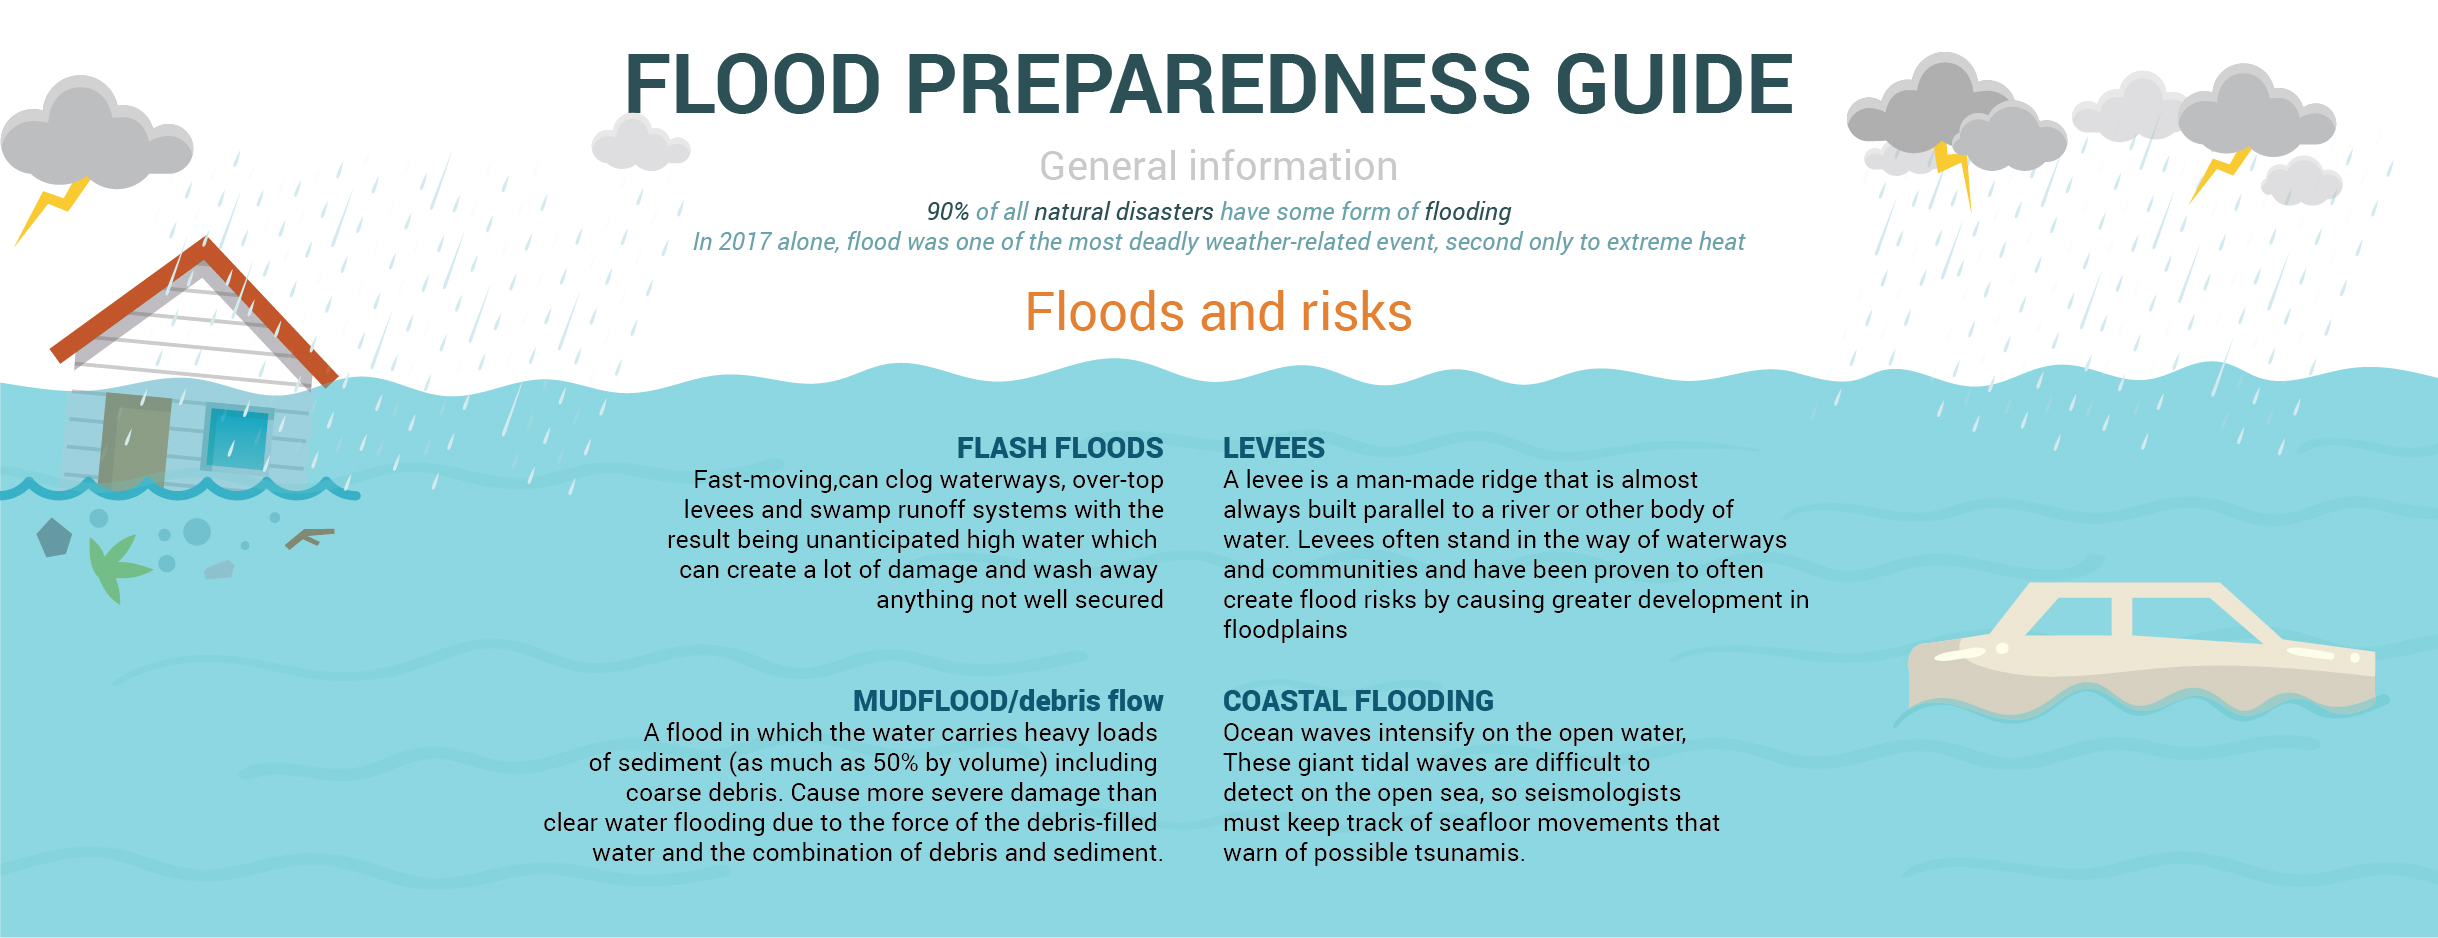 flood_preparedness_guide_for_senior_and_pets